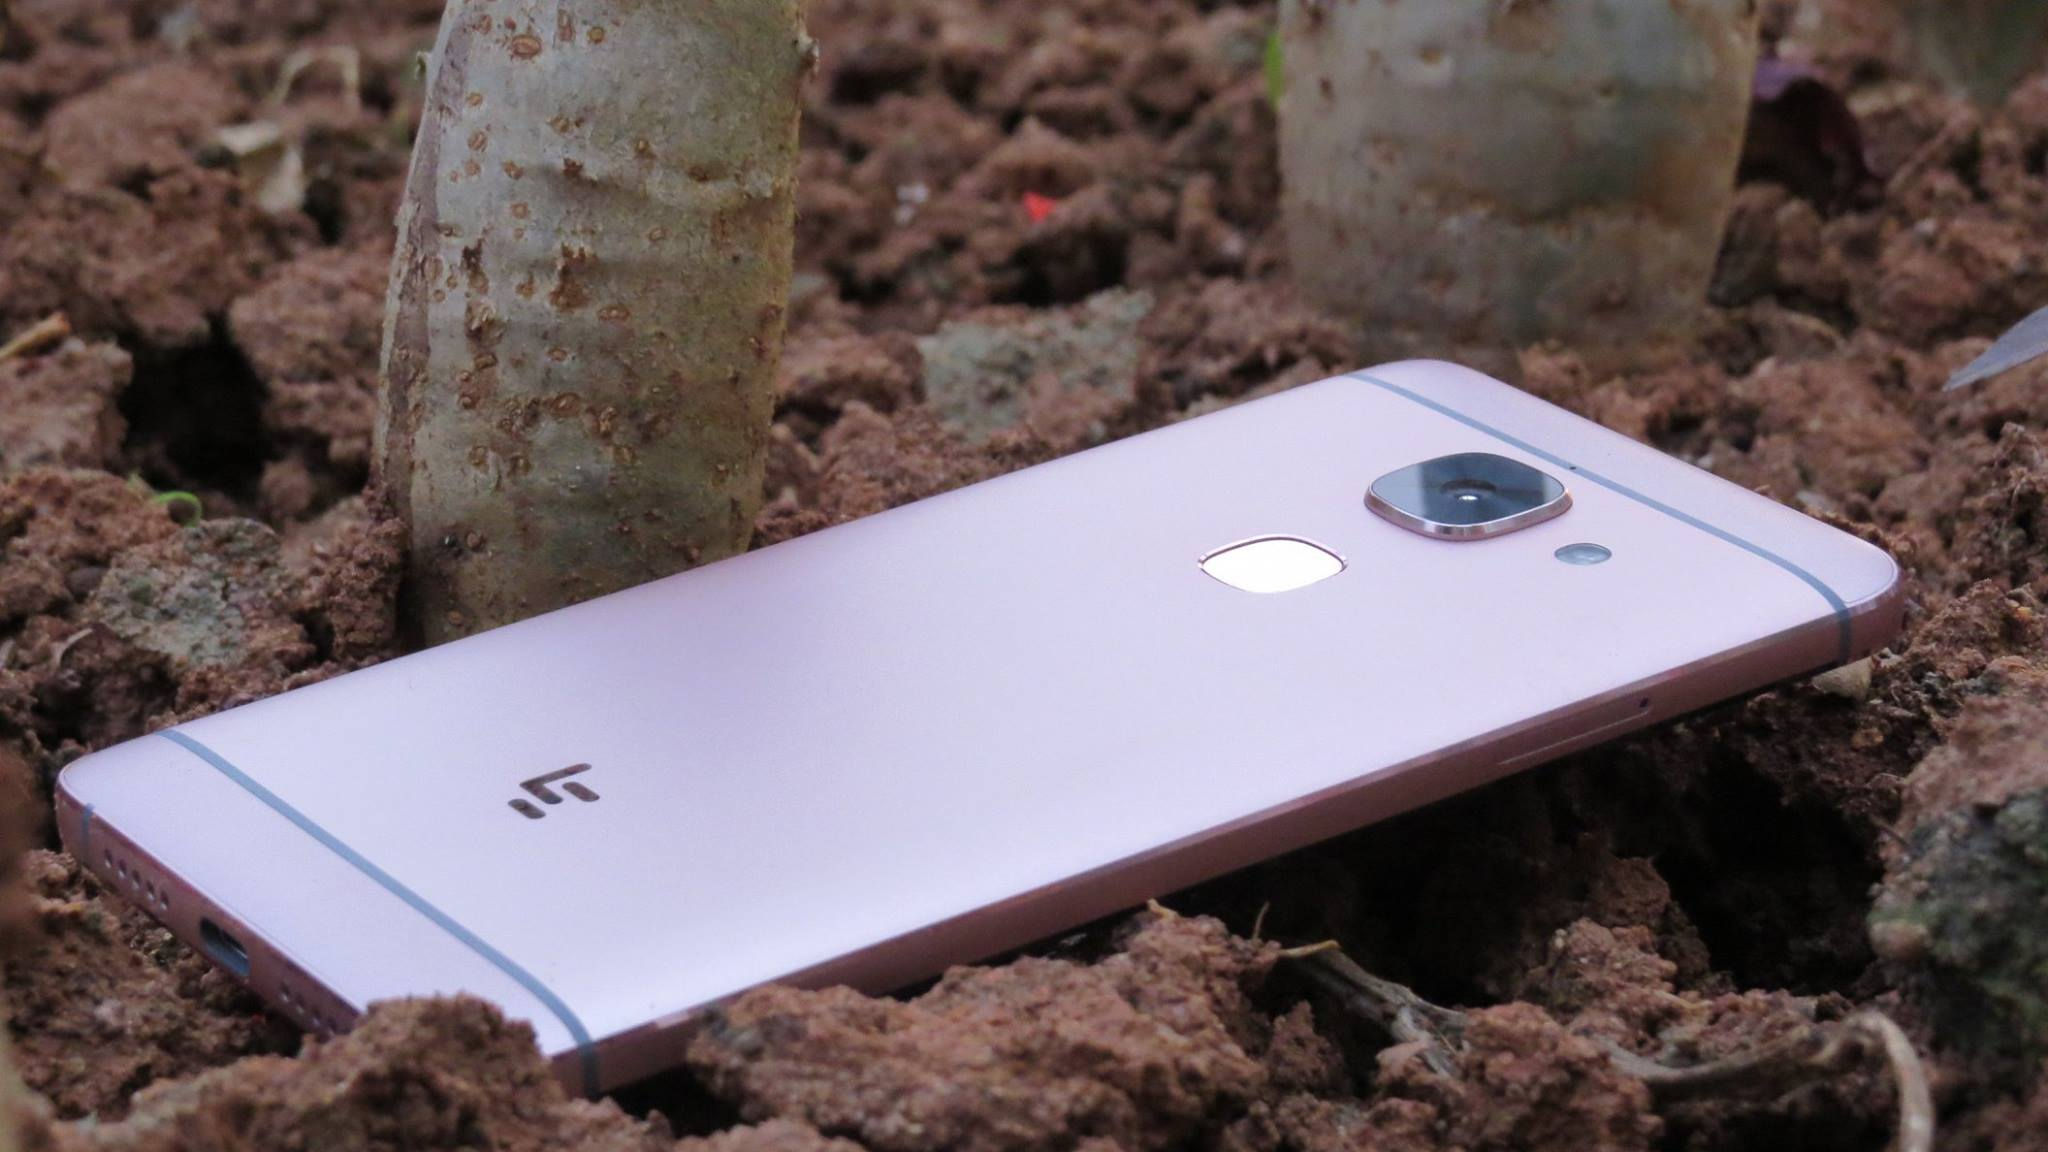 LeEco Le Max 2 Review : Content-Driven Smartphone For Multimedia Lovers